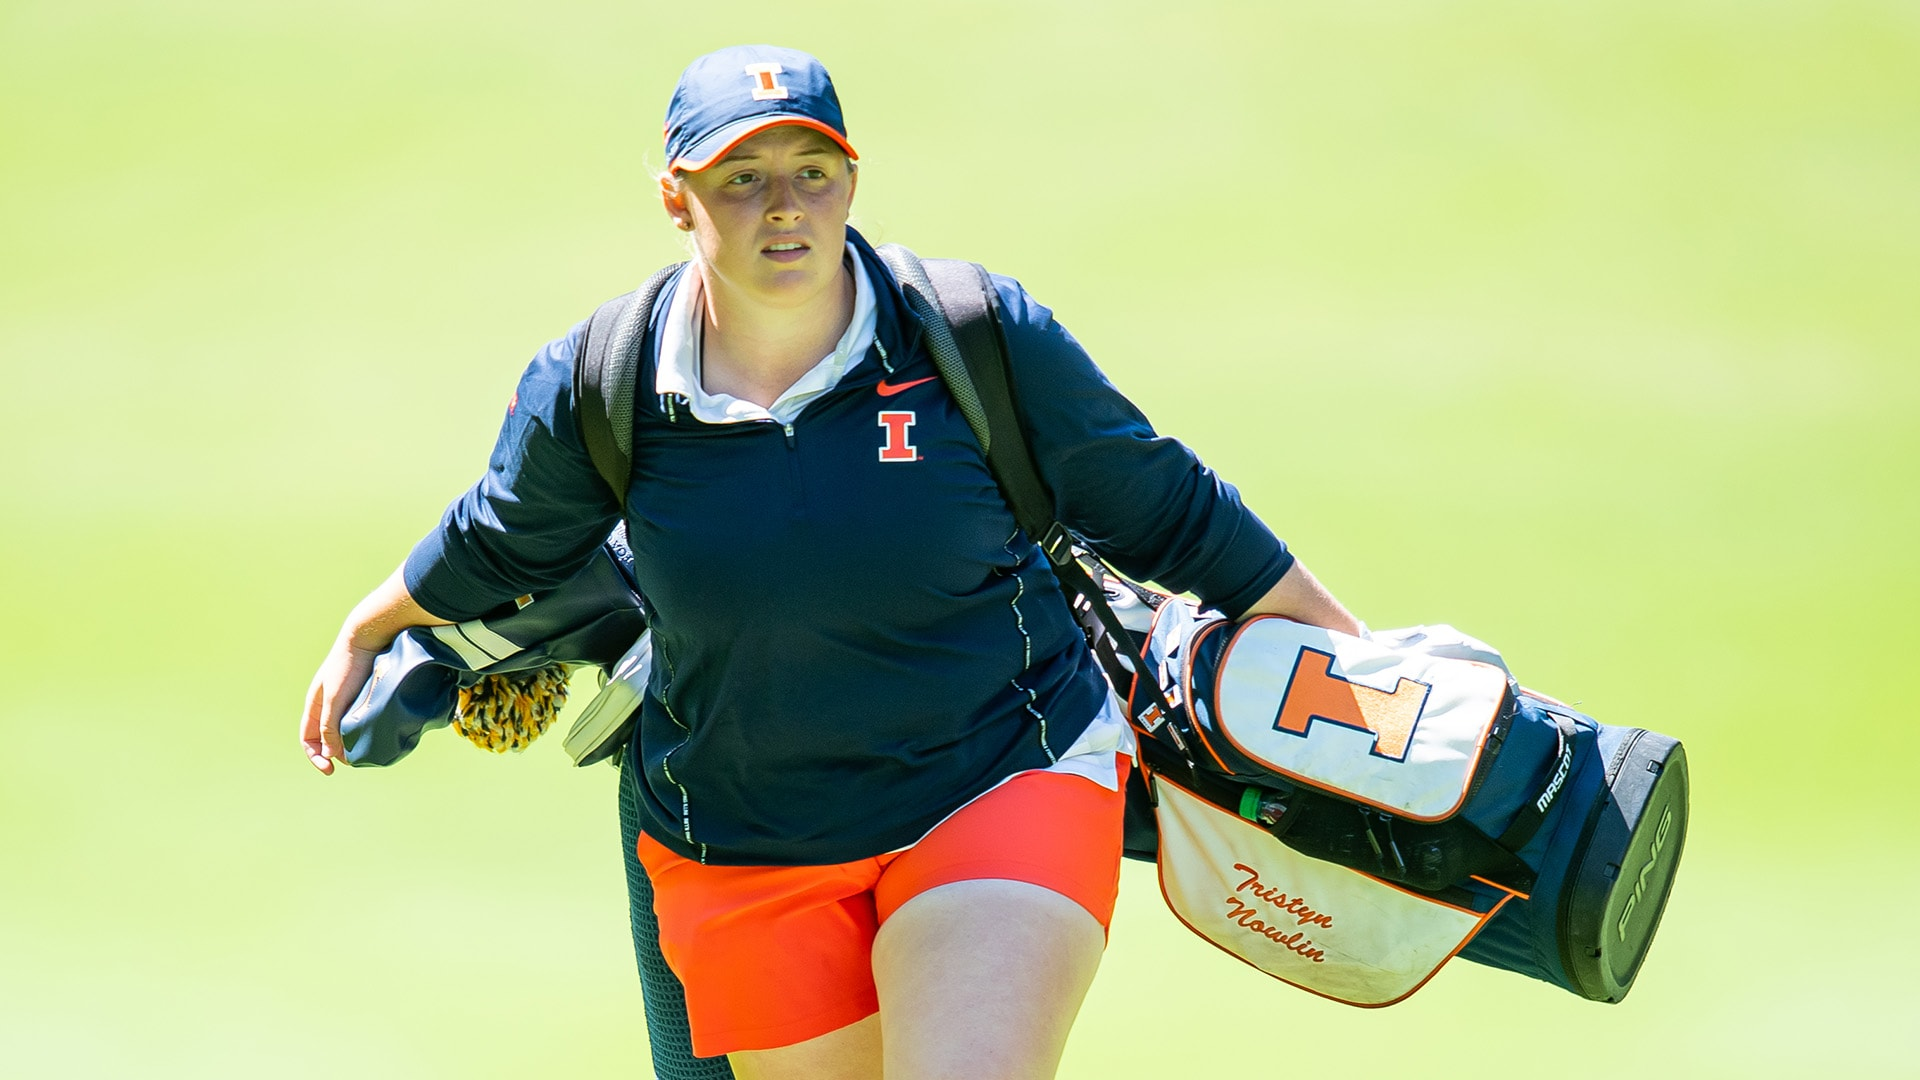 In first NCAAs, Illinois has chance to make match play | Golf Channel